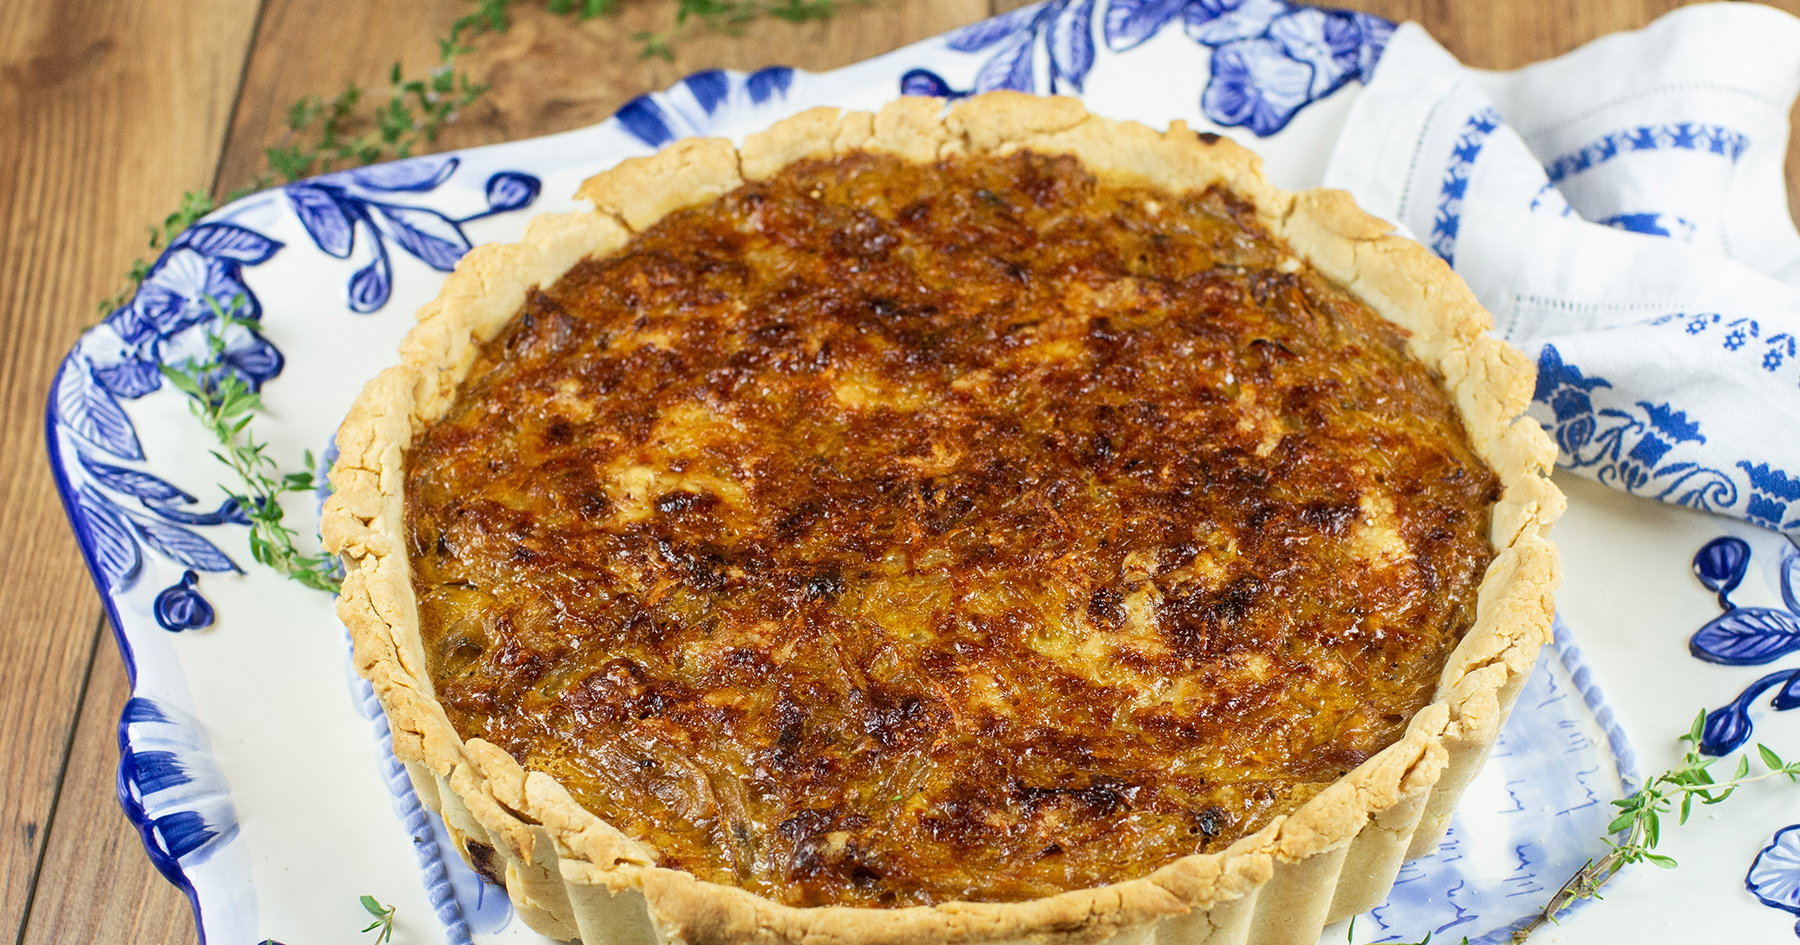 Flemish Caramelized Onion Tart